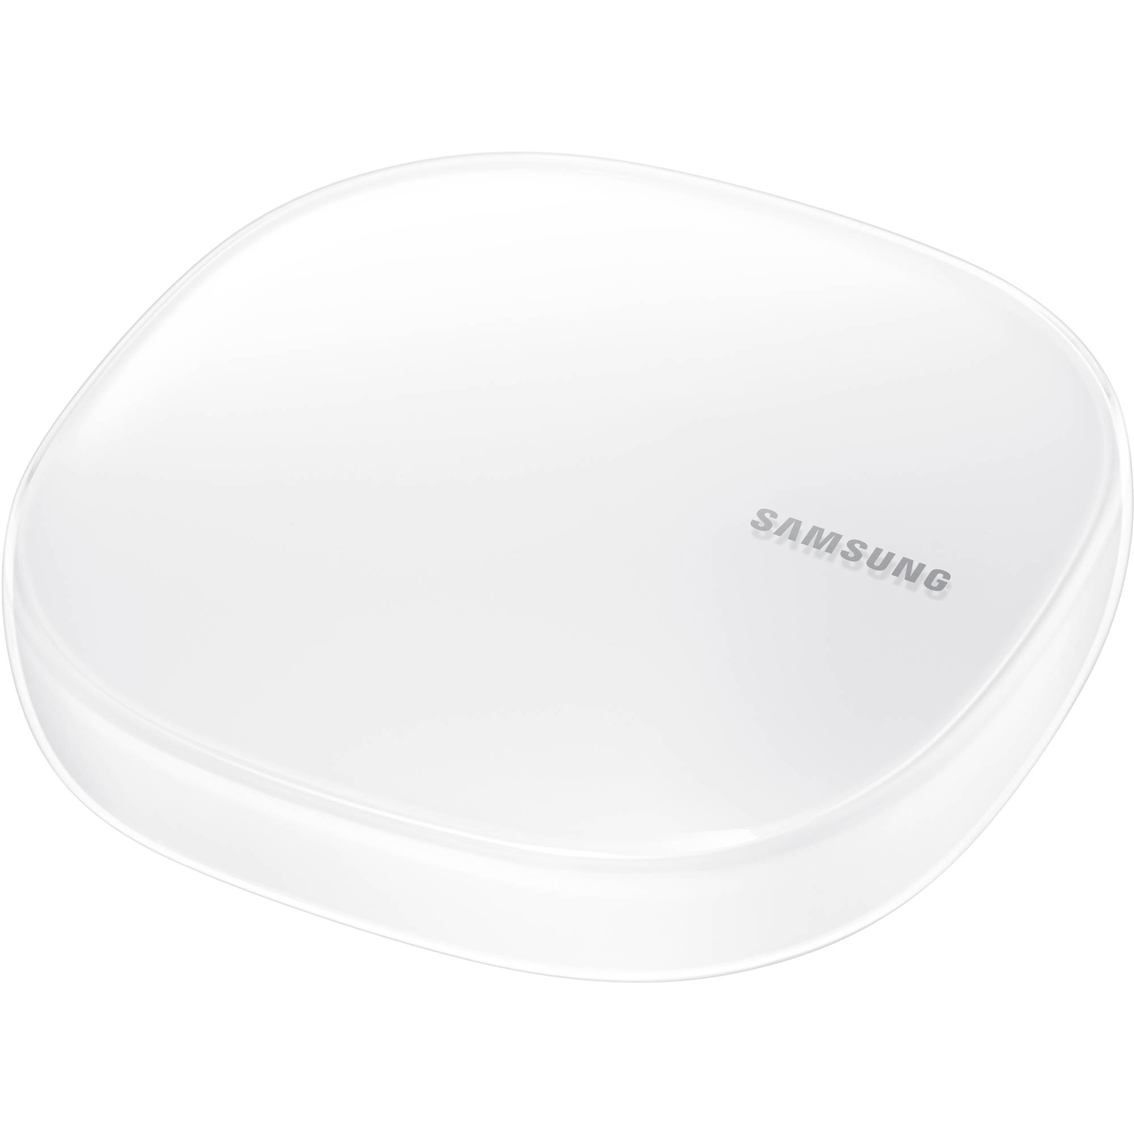 Samsung Smartthings Connect Home Pro Hubs Modems Ports Routers Structured Wiring Homepro S At A Glance